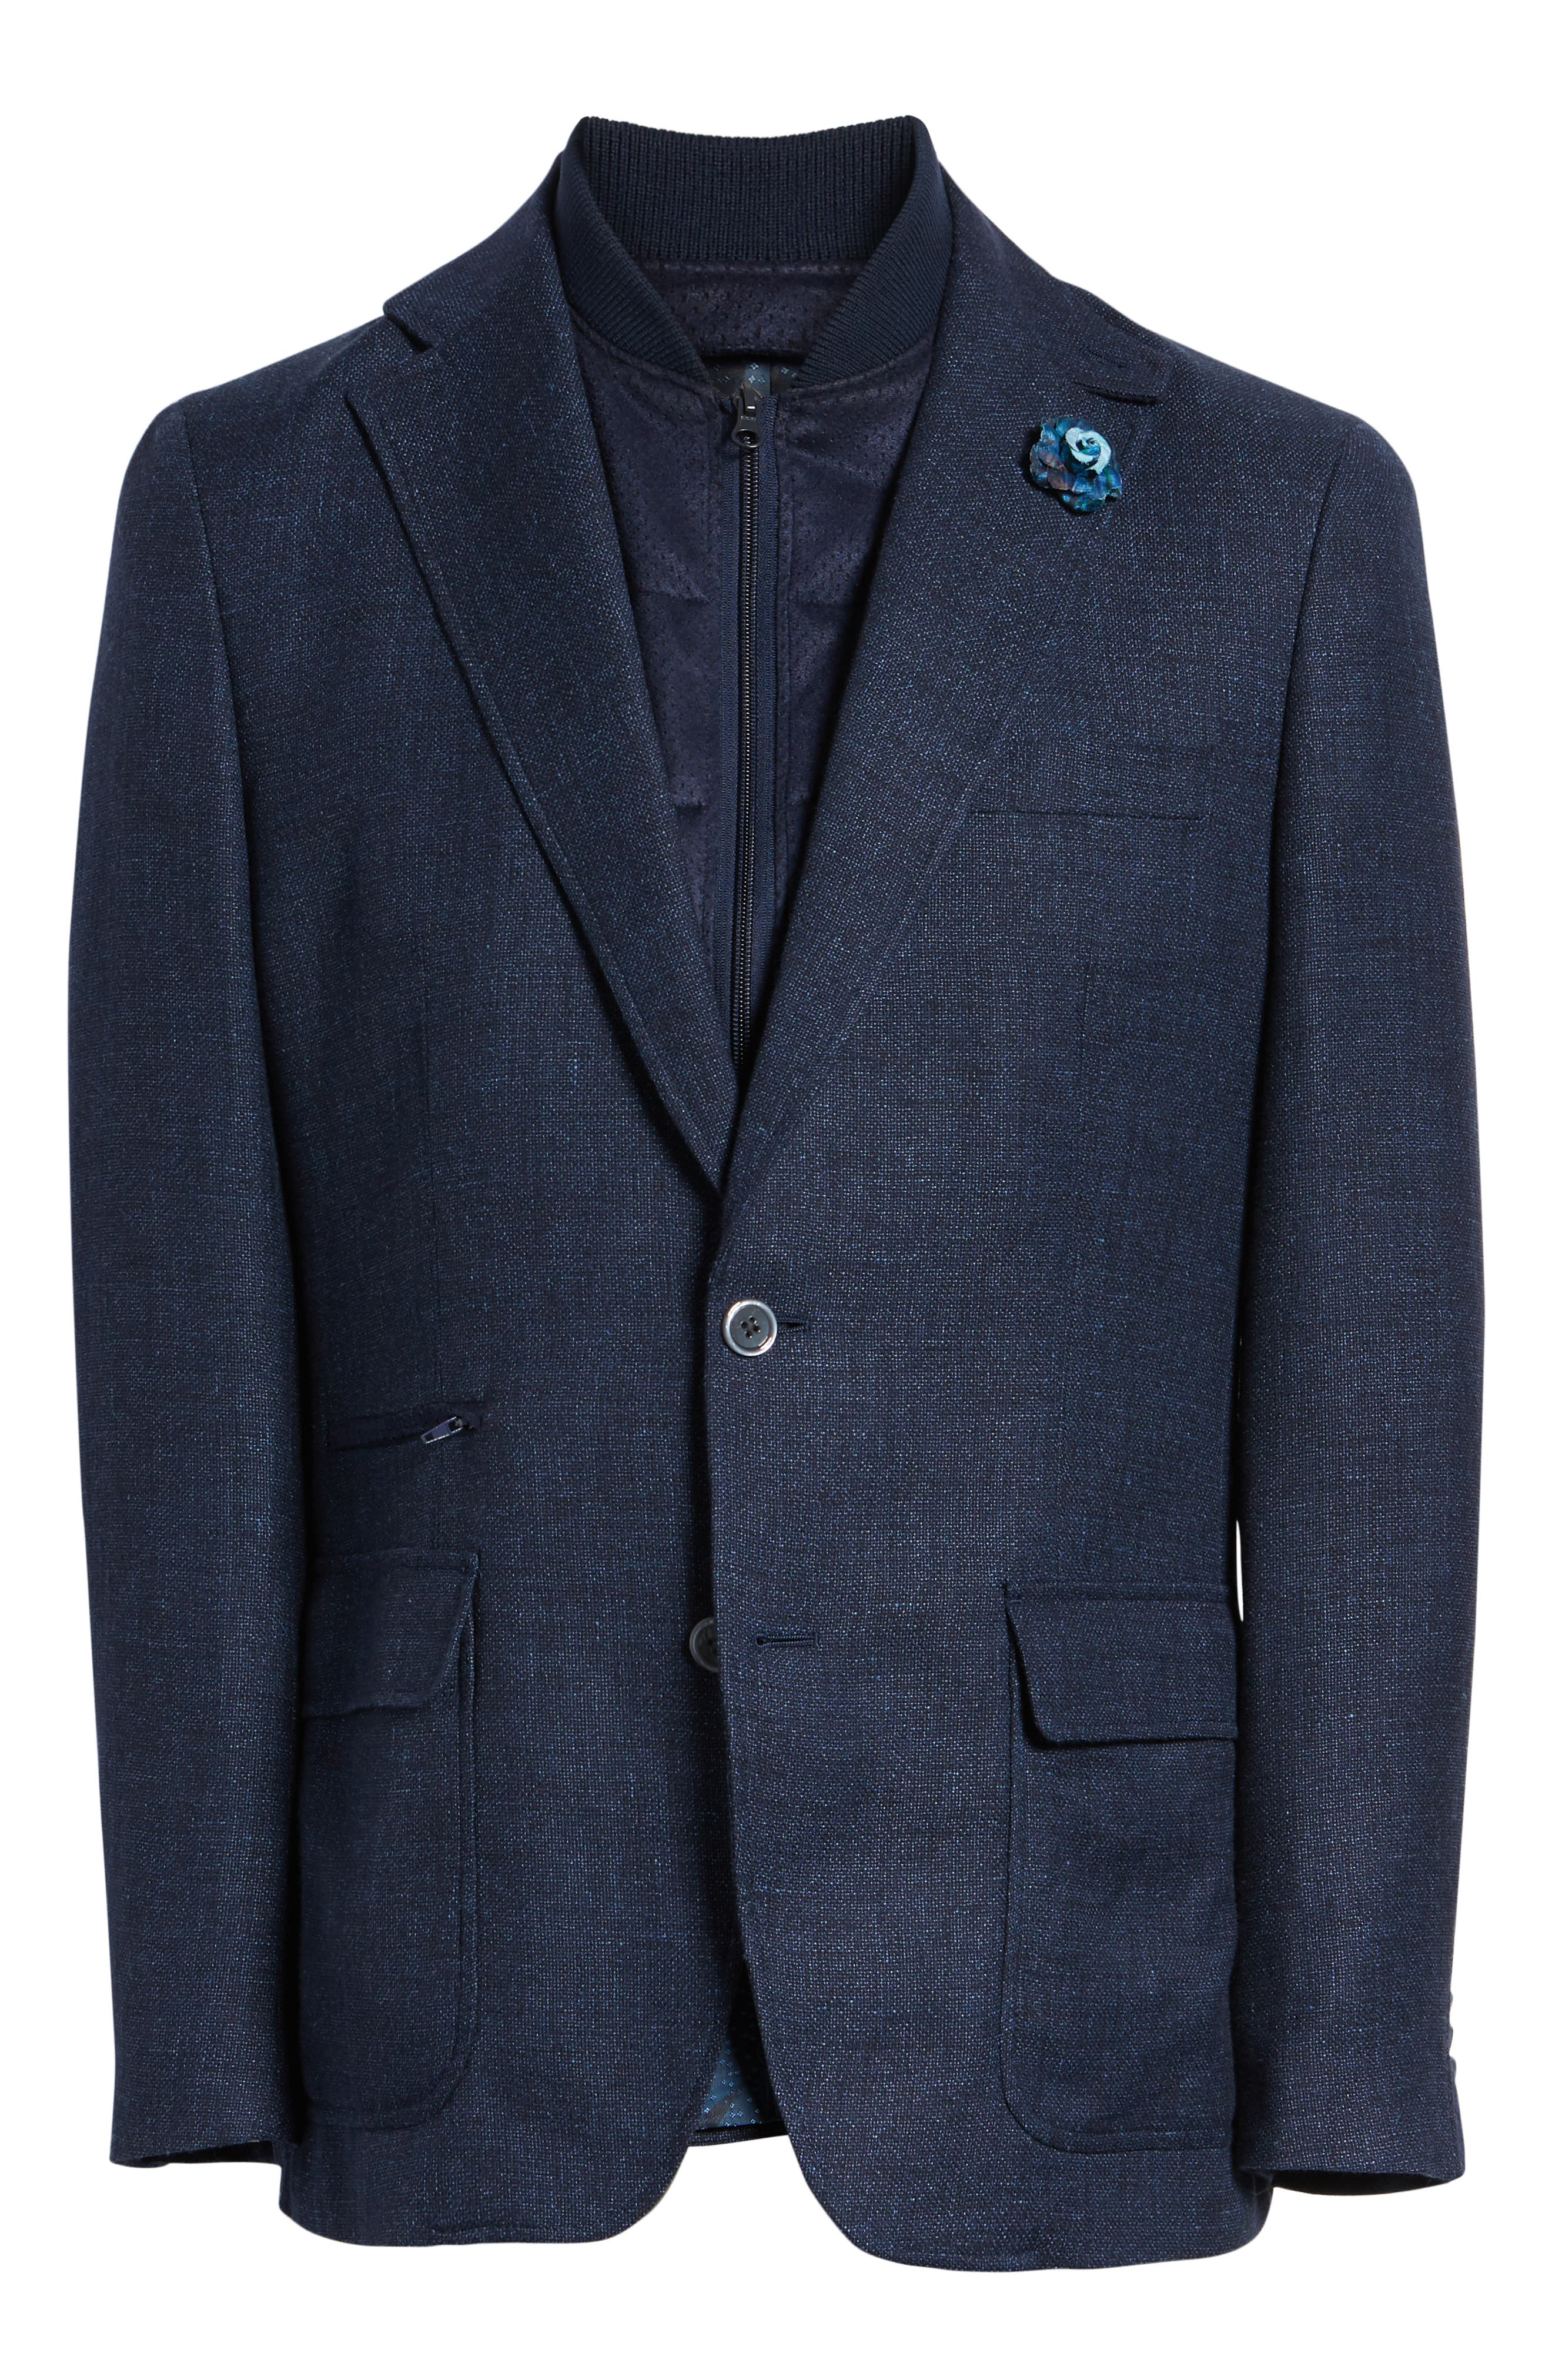 Downhill Tailored Wool Sport Coat,                             Alternate thumbnail 5, color,                             NAVY